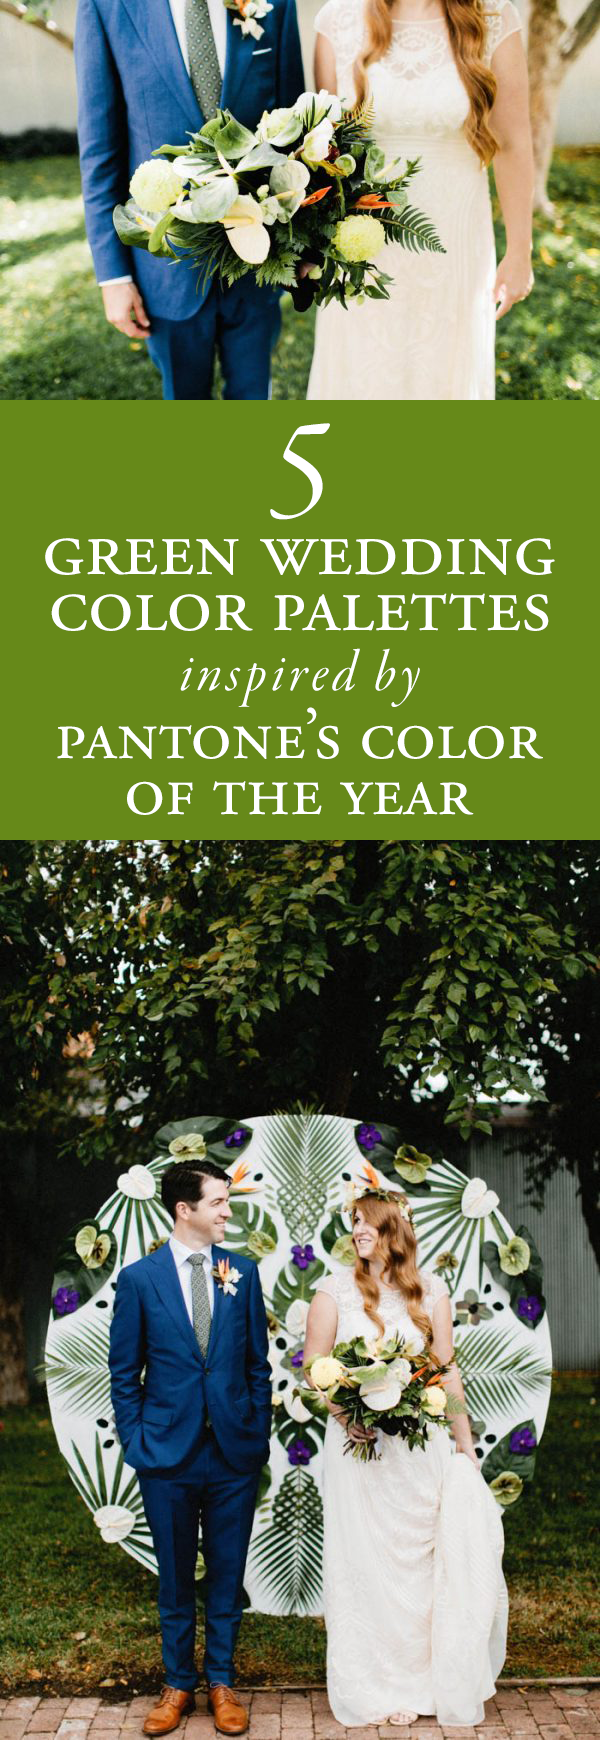 5 Green Wedding Palettes Inspired by Pantone's Color of the Year